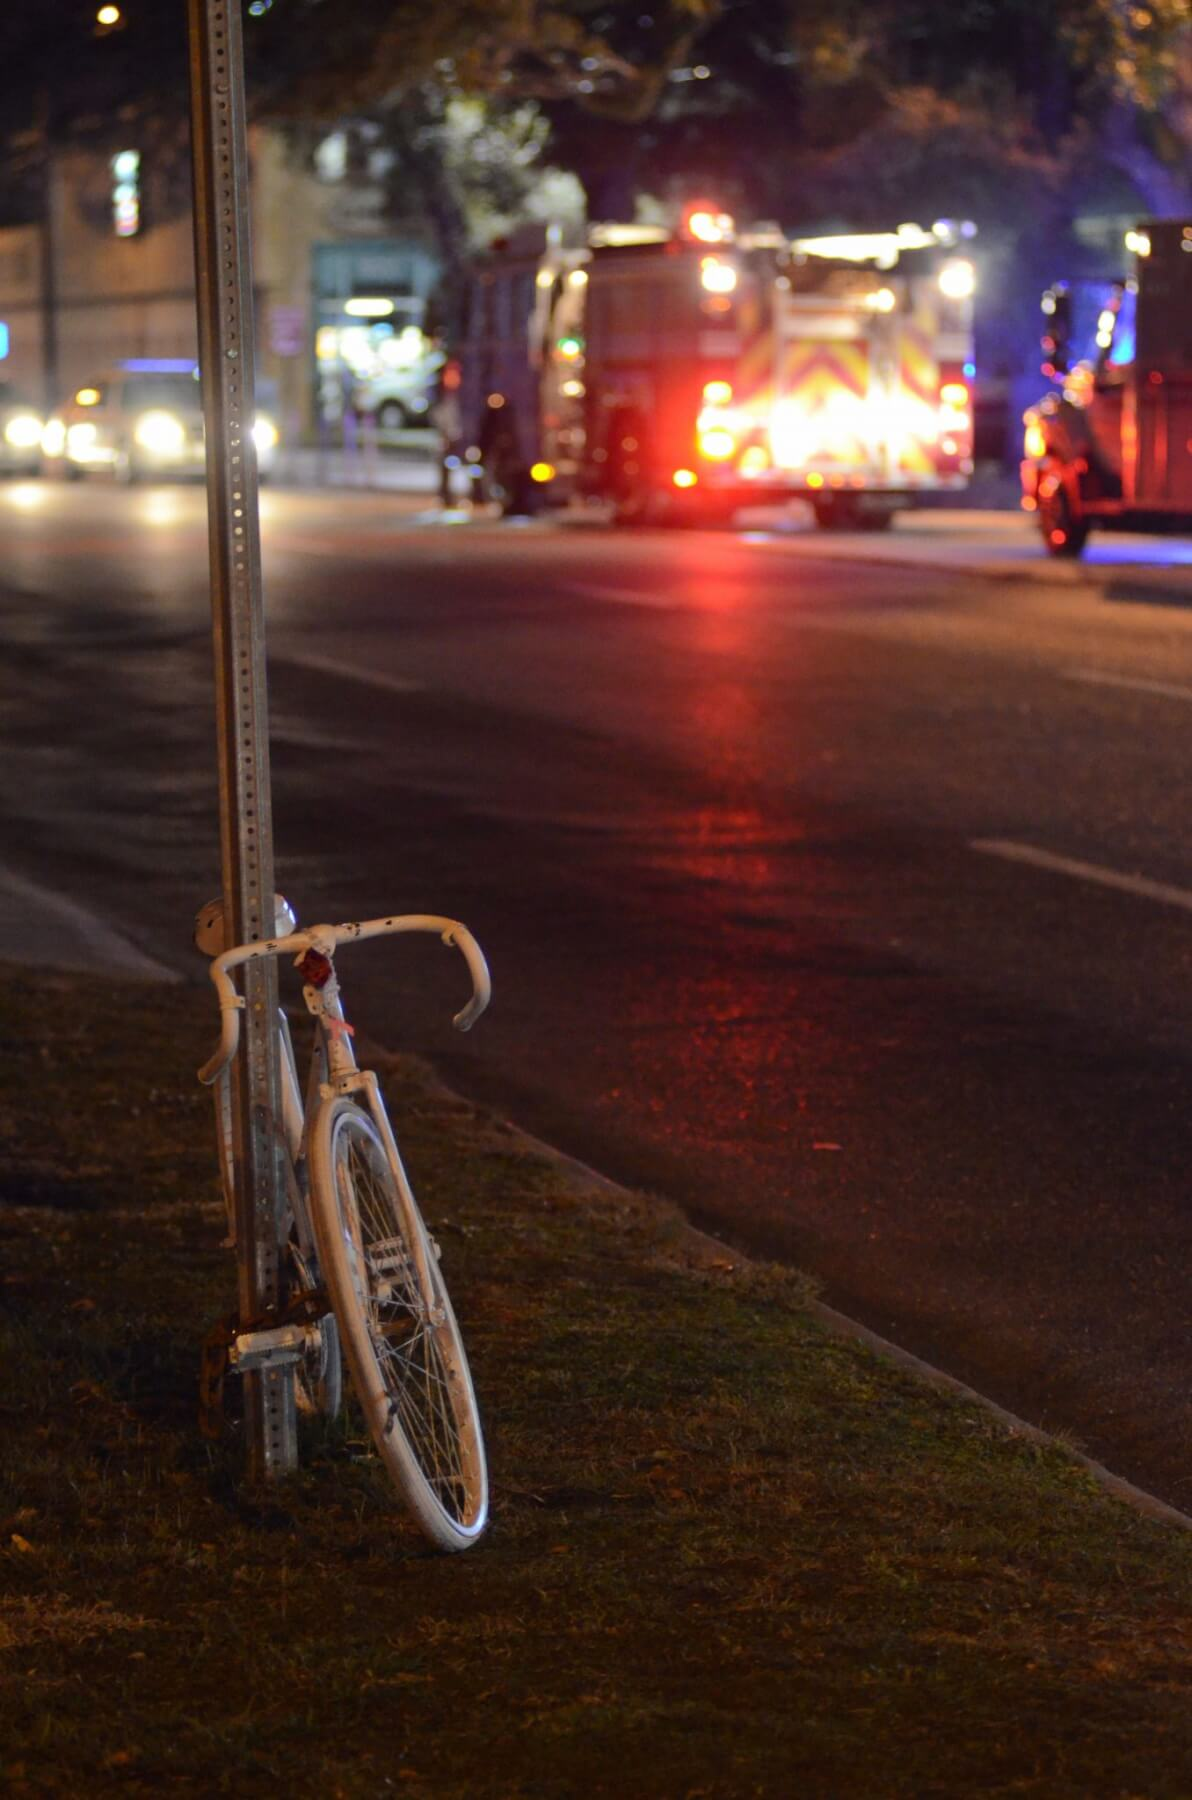 MPD: Victim of Thanksgiving cycling accident likely fell